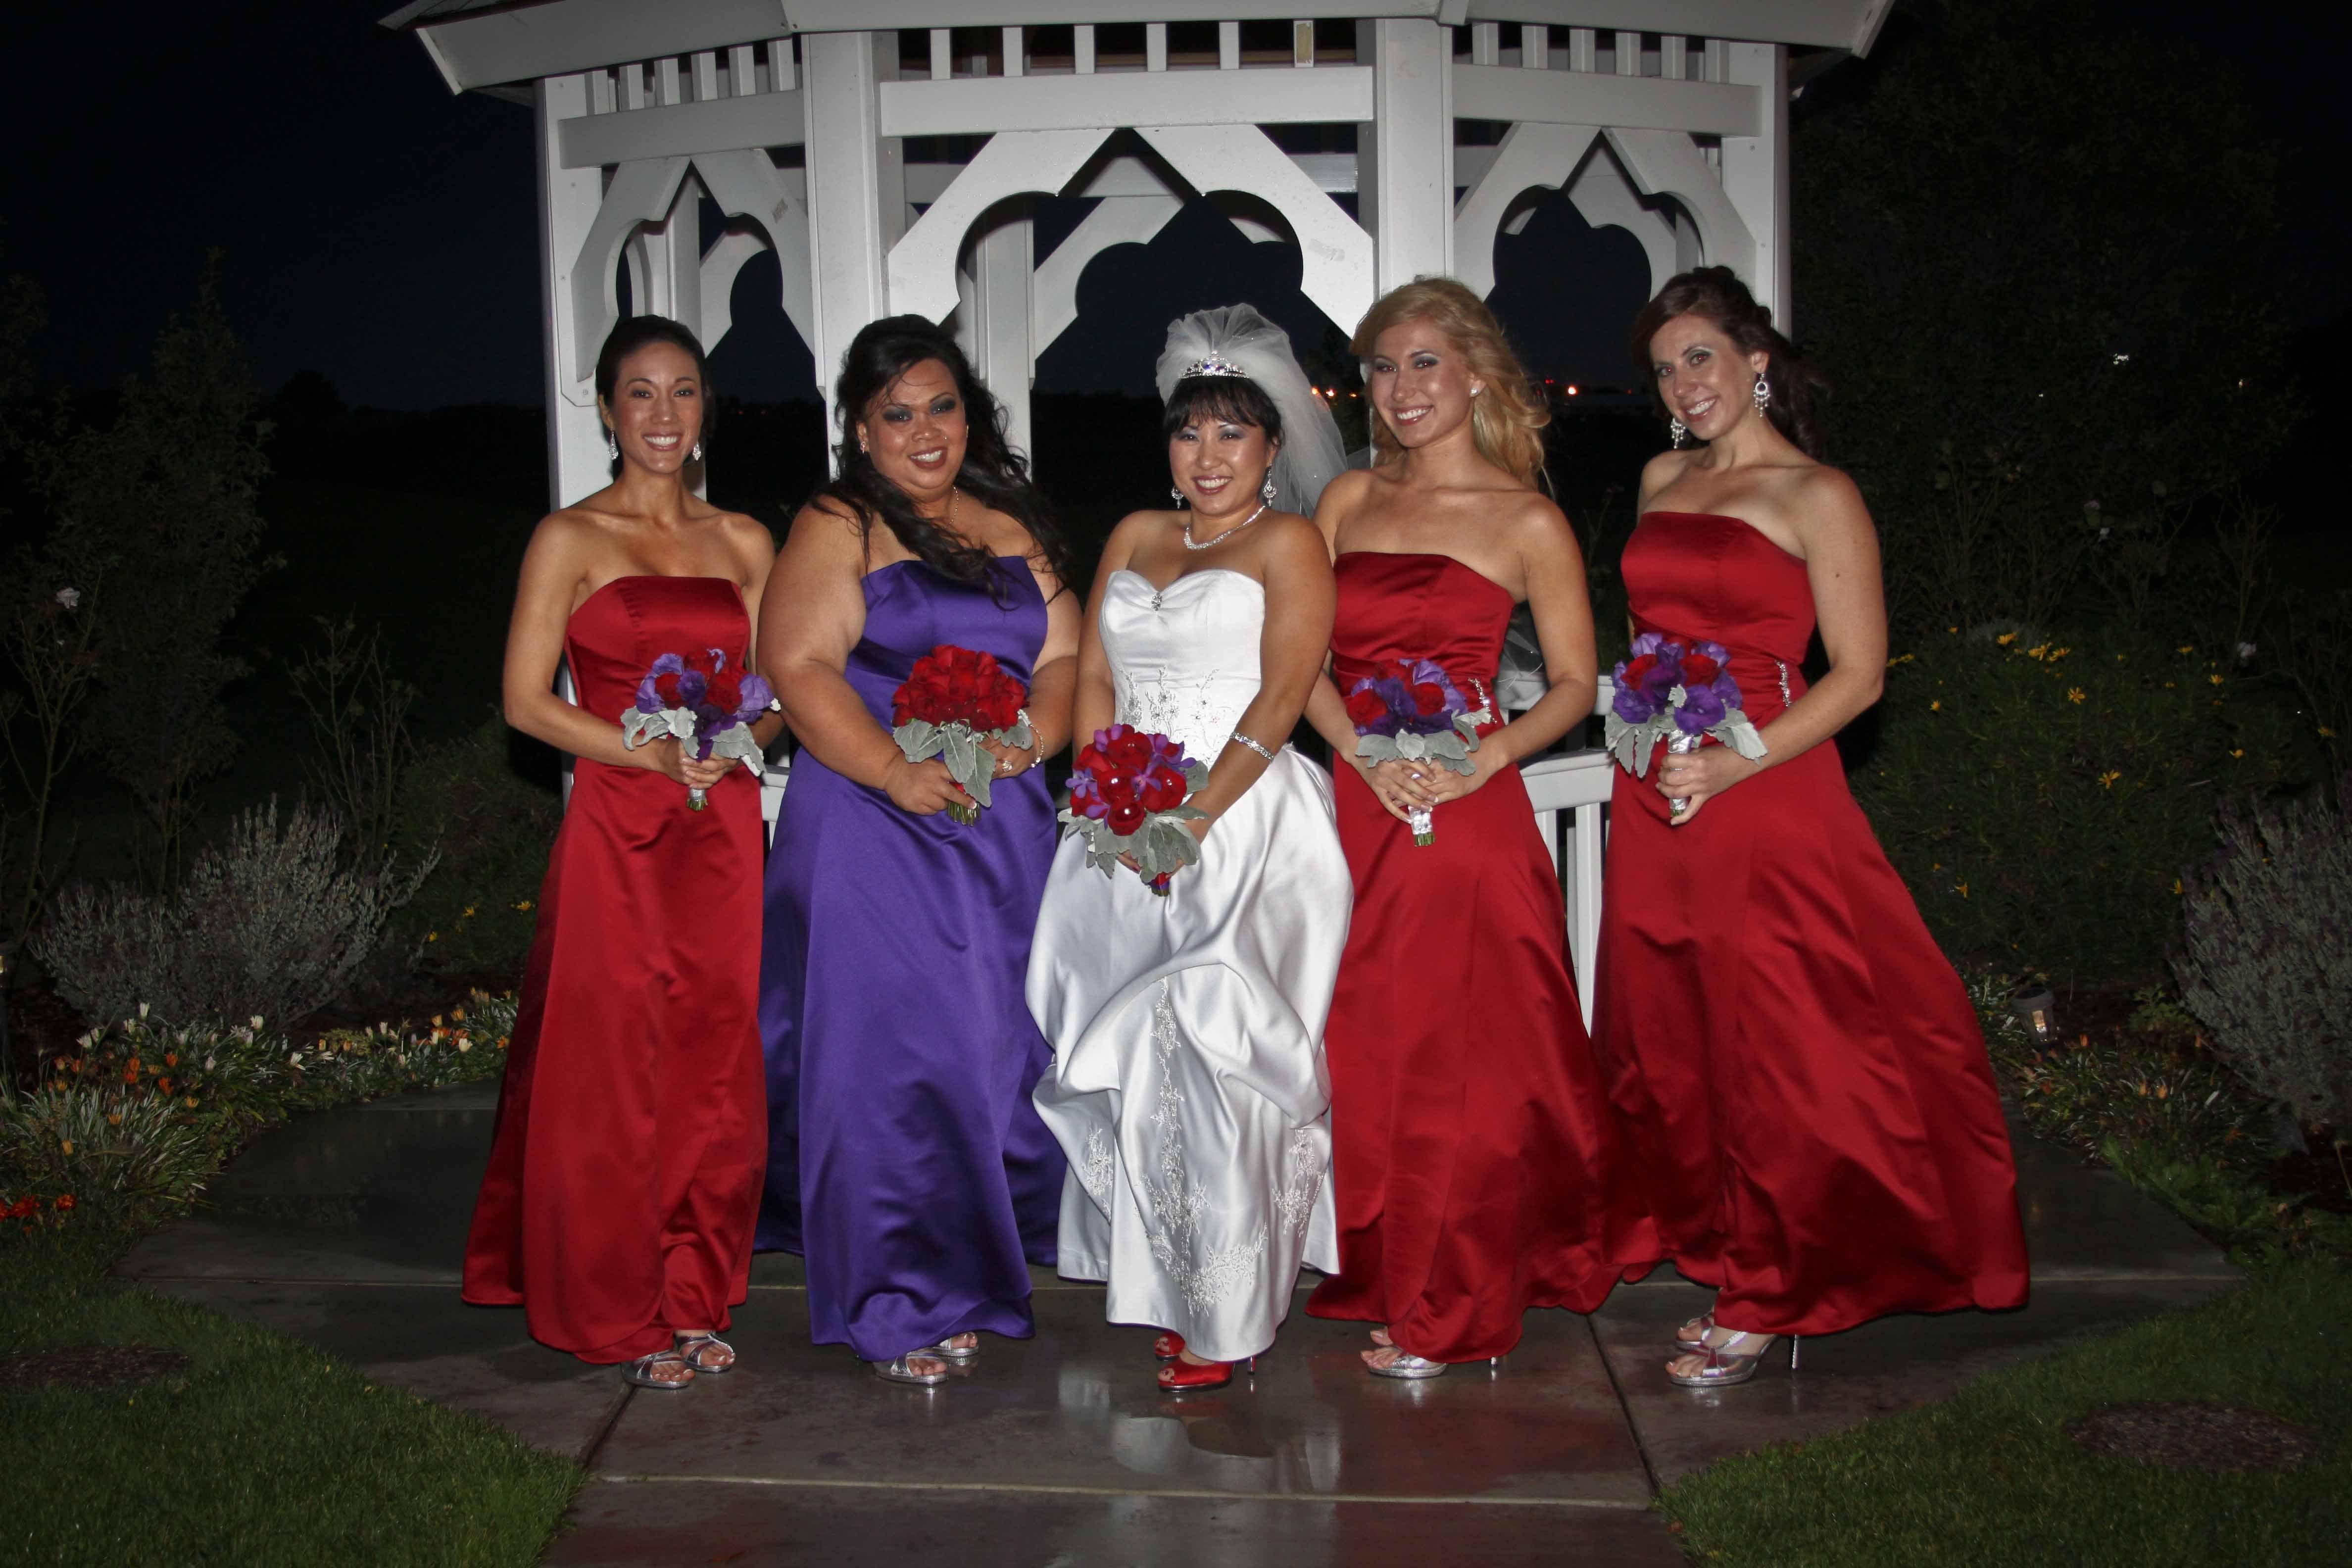 Ceremony, Flowers & Decor, Bridesmaids, Bridesmaids Dresses, Fashion, red, purple, Bouquets, Post